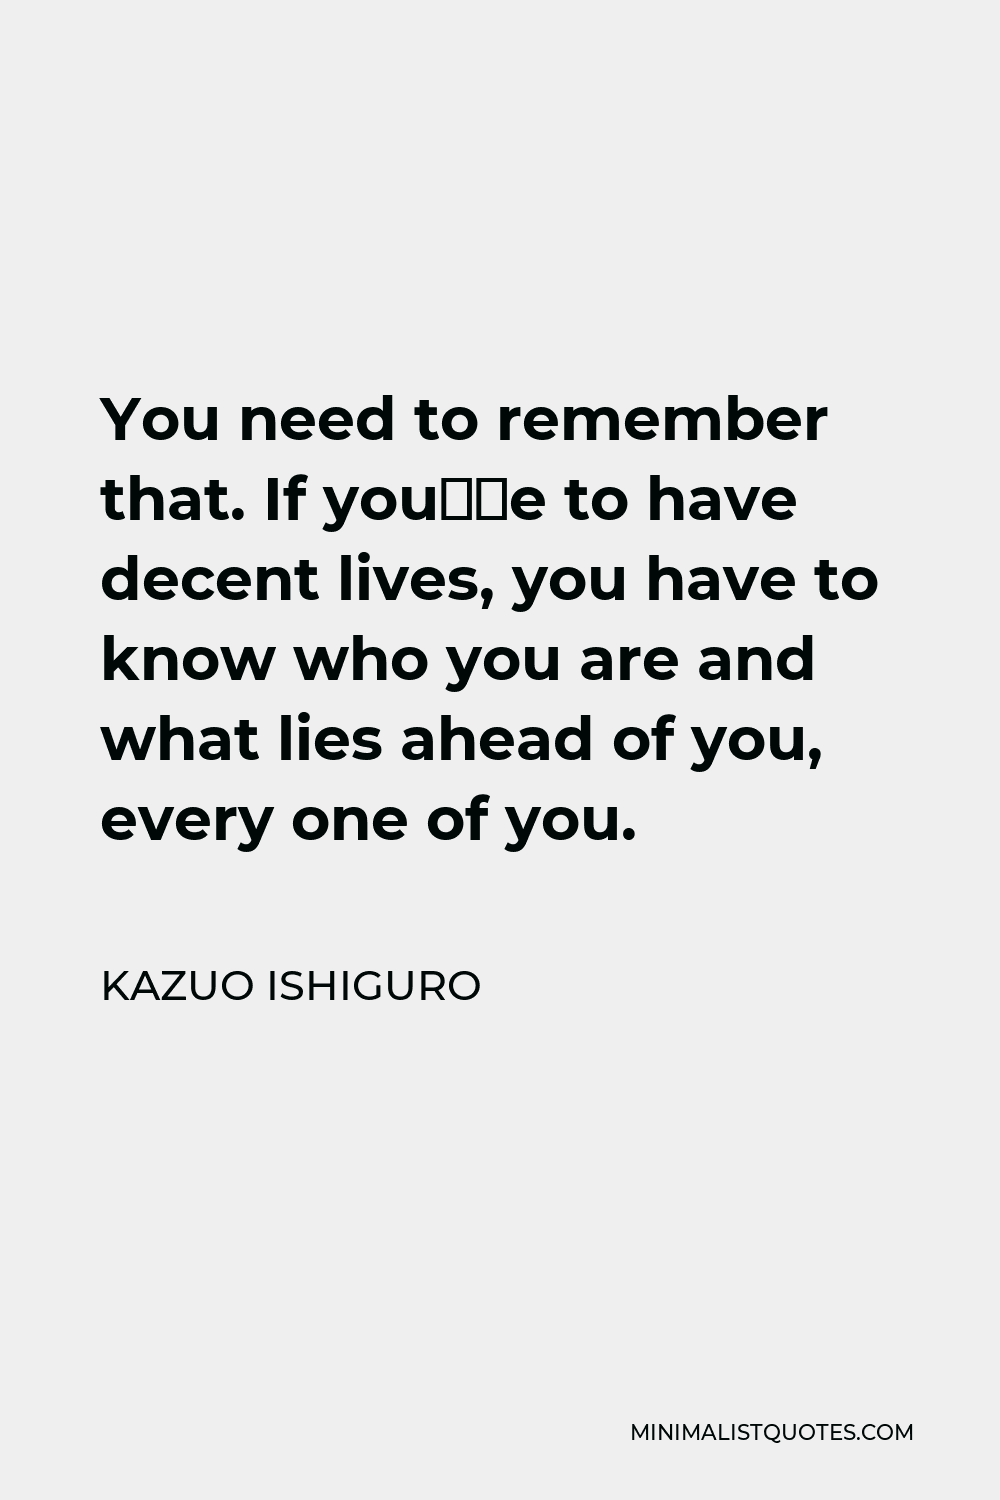 Kazuo Ishiguro Quote - You need to remember that. If you're to have decent lives, you have to know who you are and what lies ahead of you, every one of you.